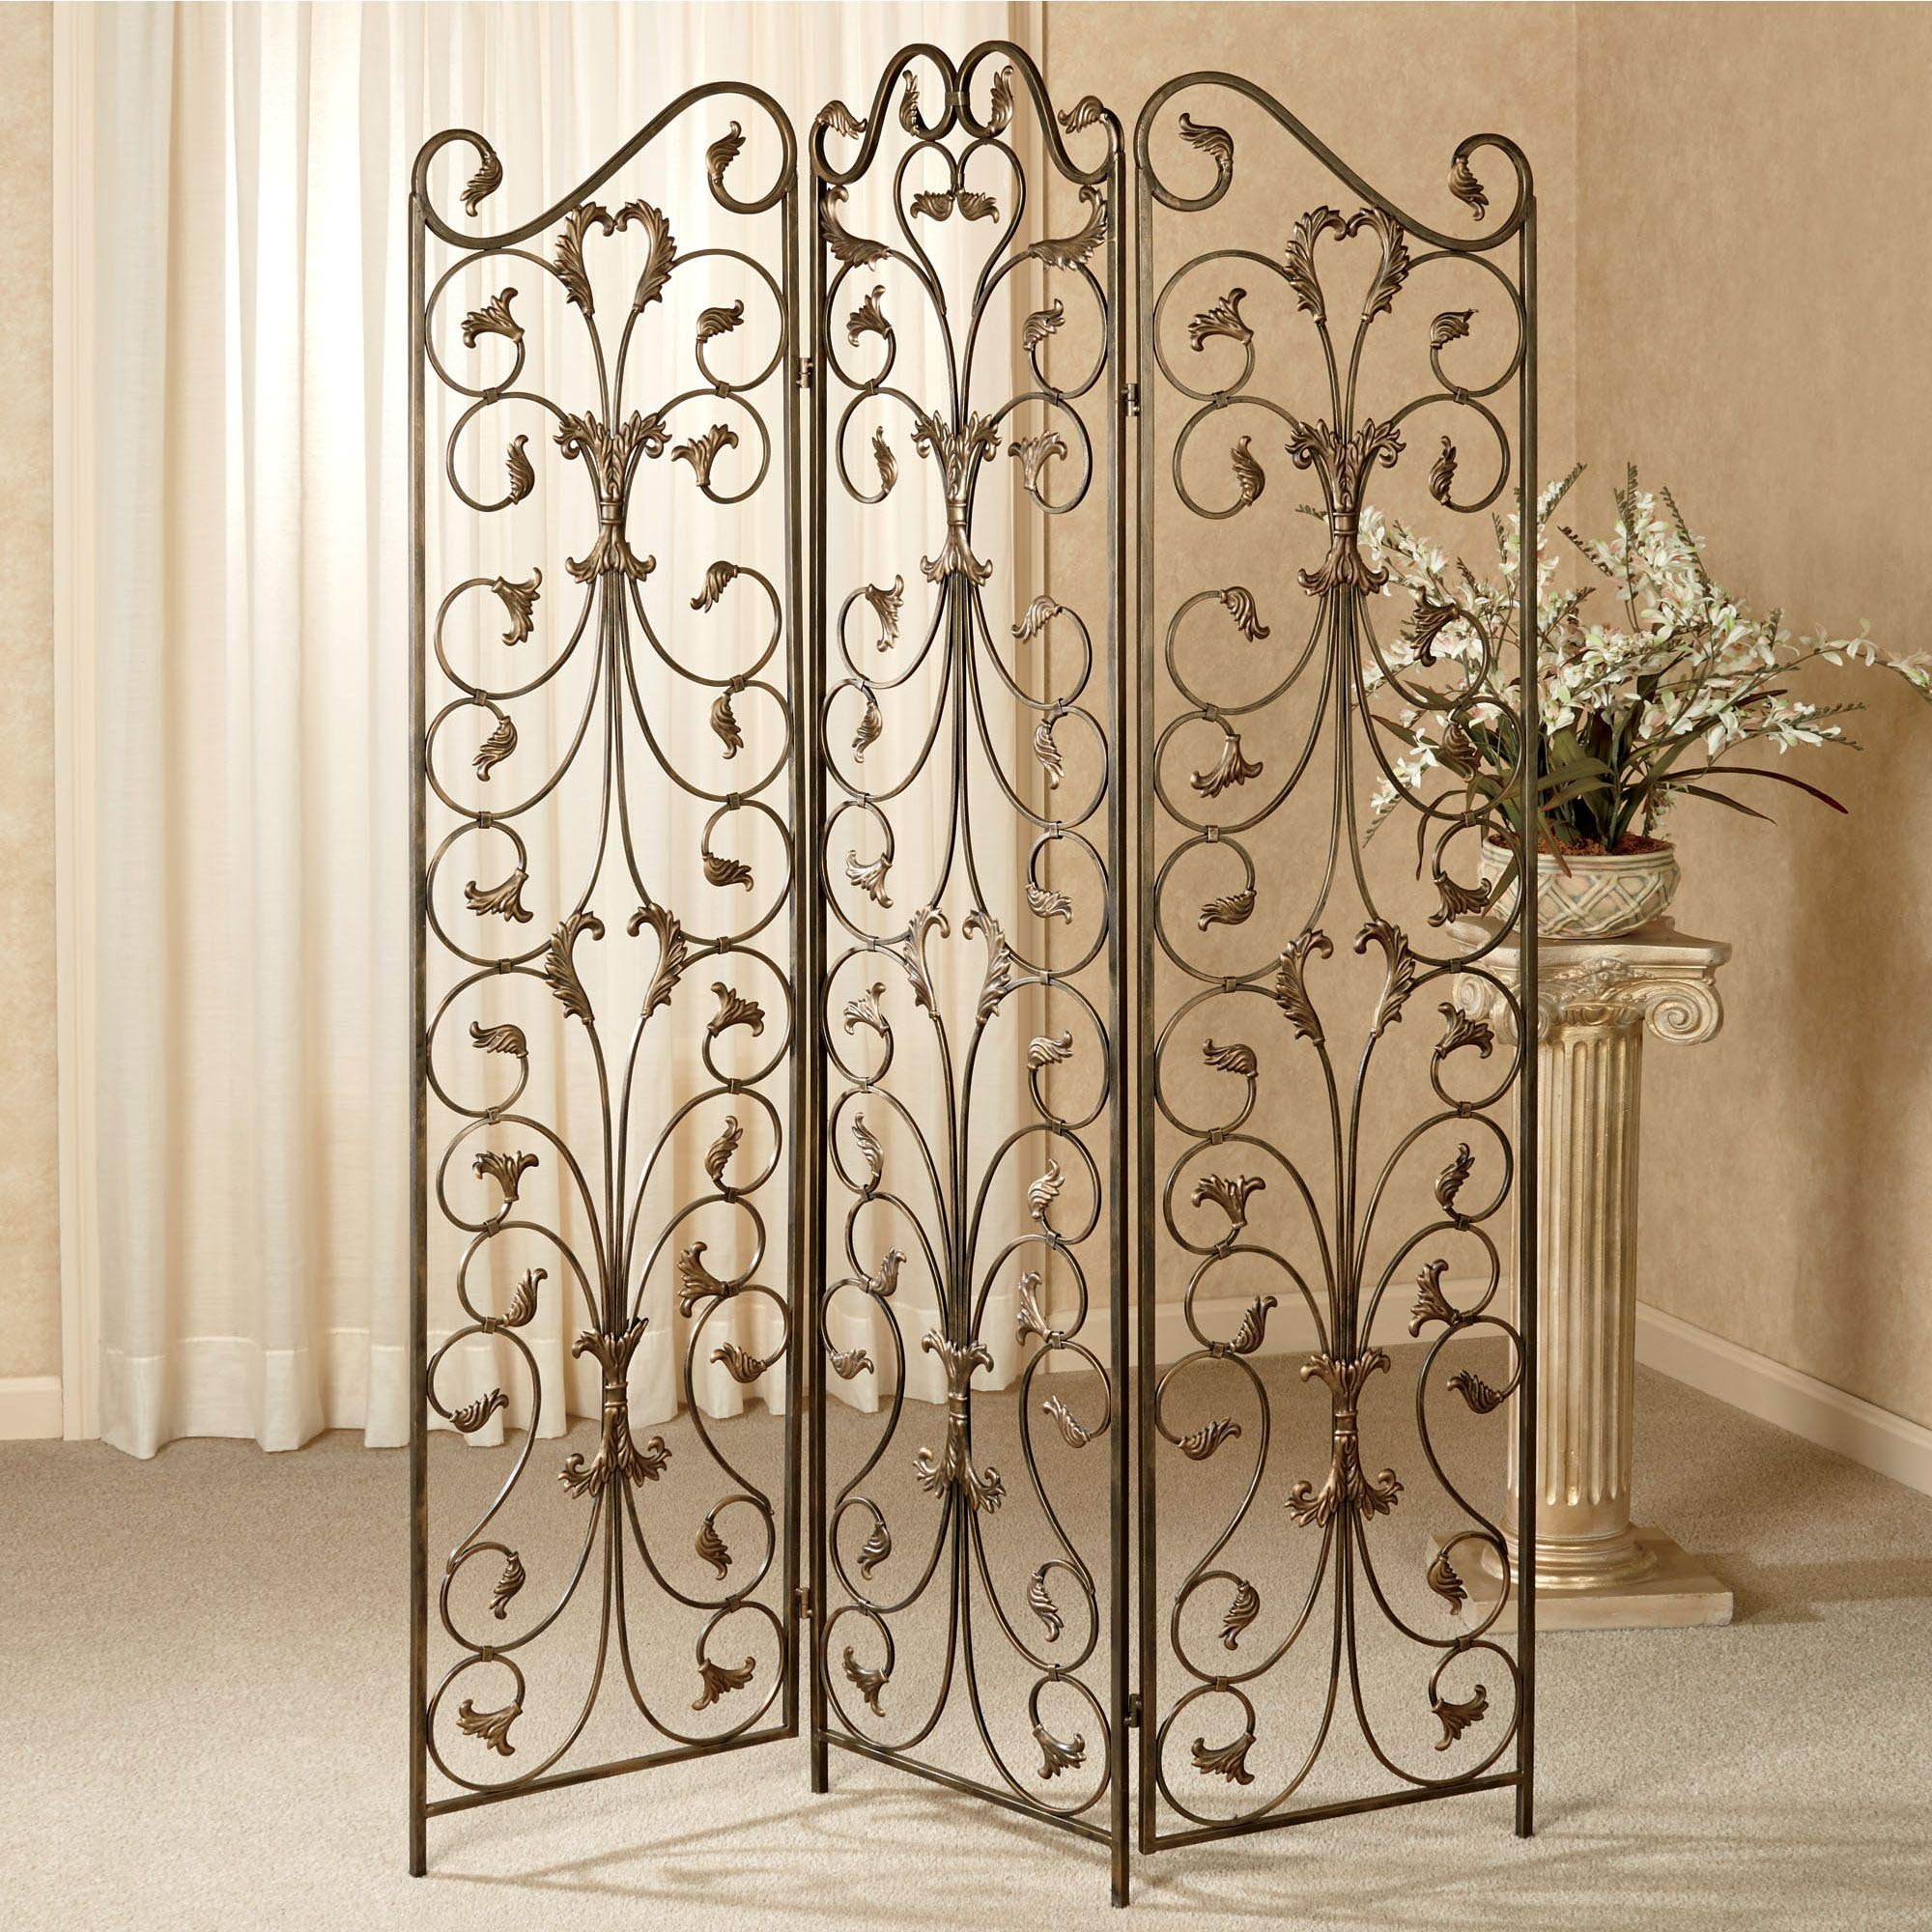 Metal Room Dividers Decorative